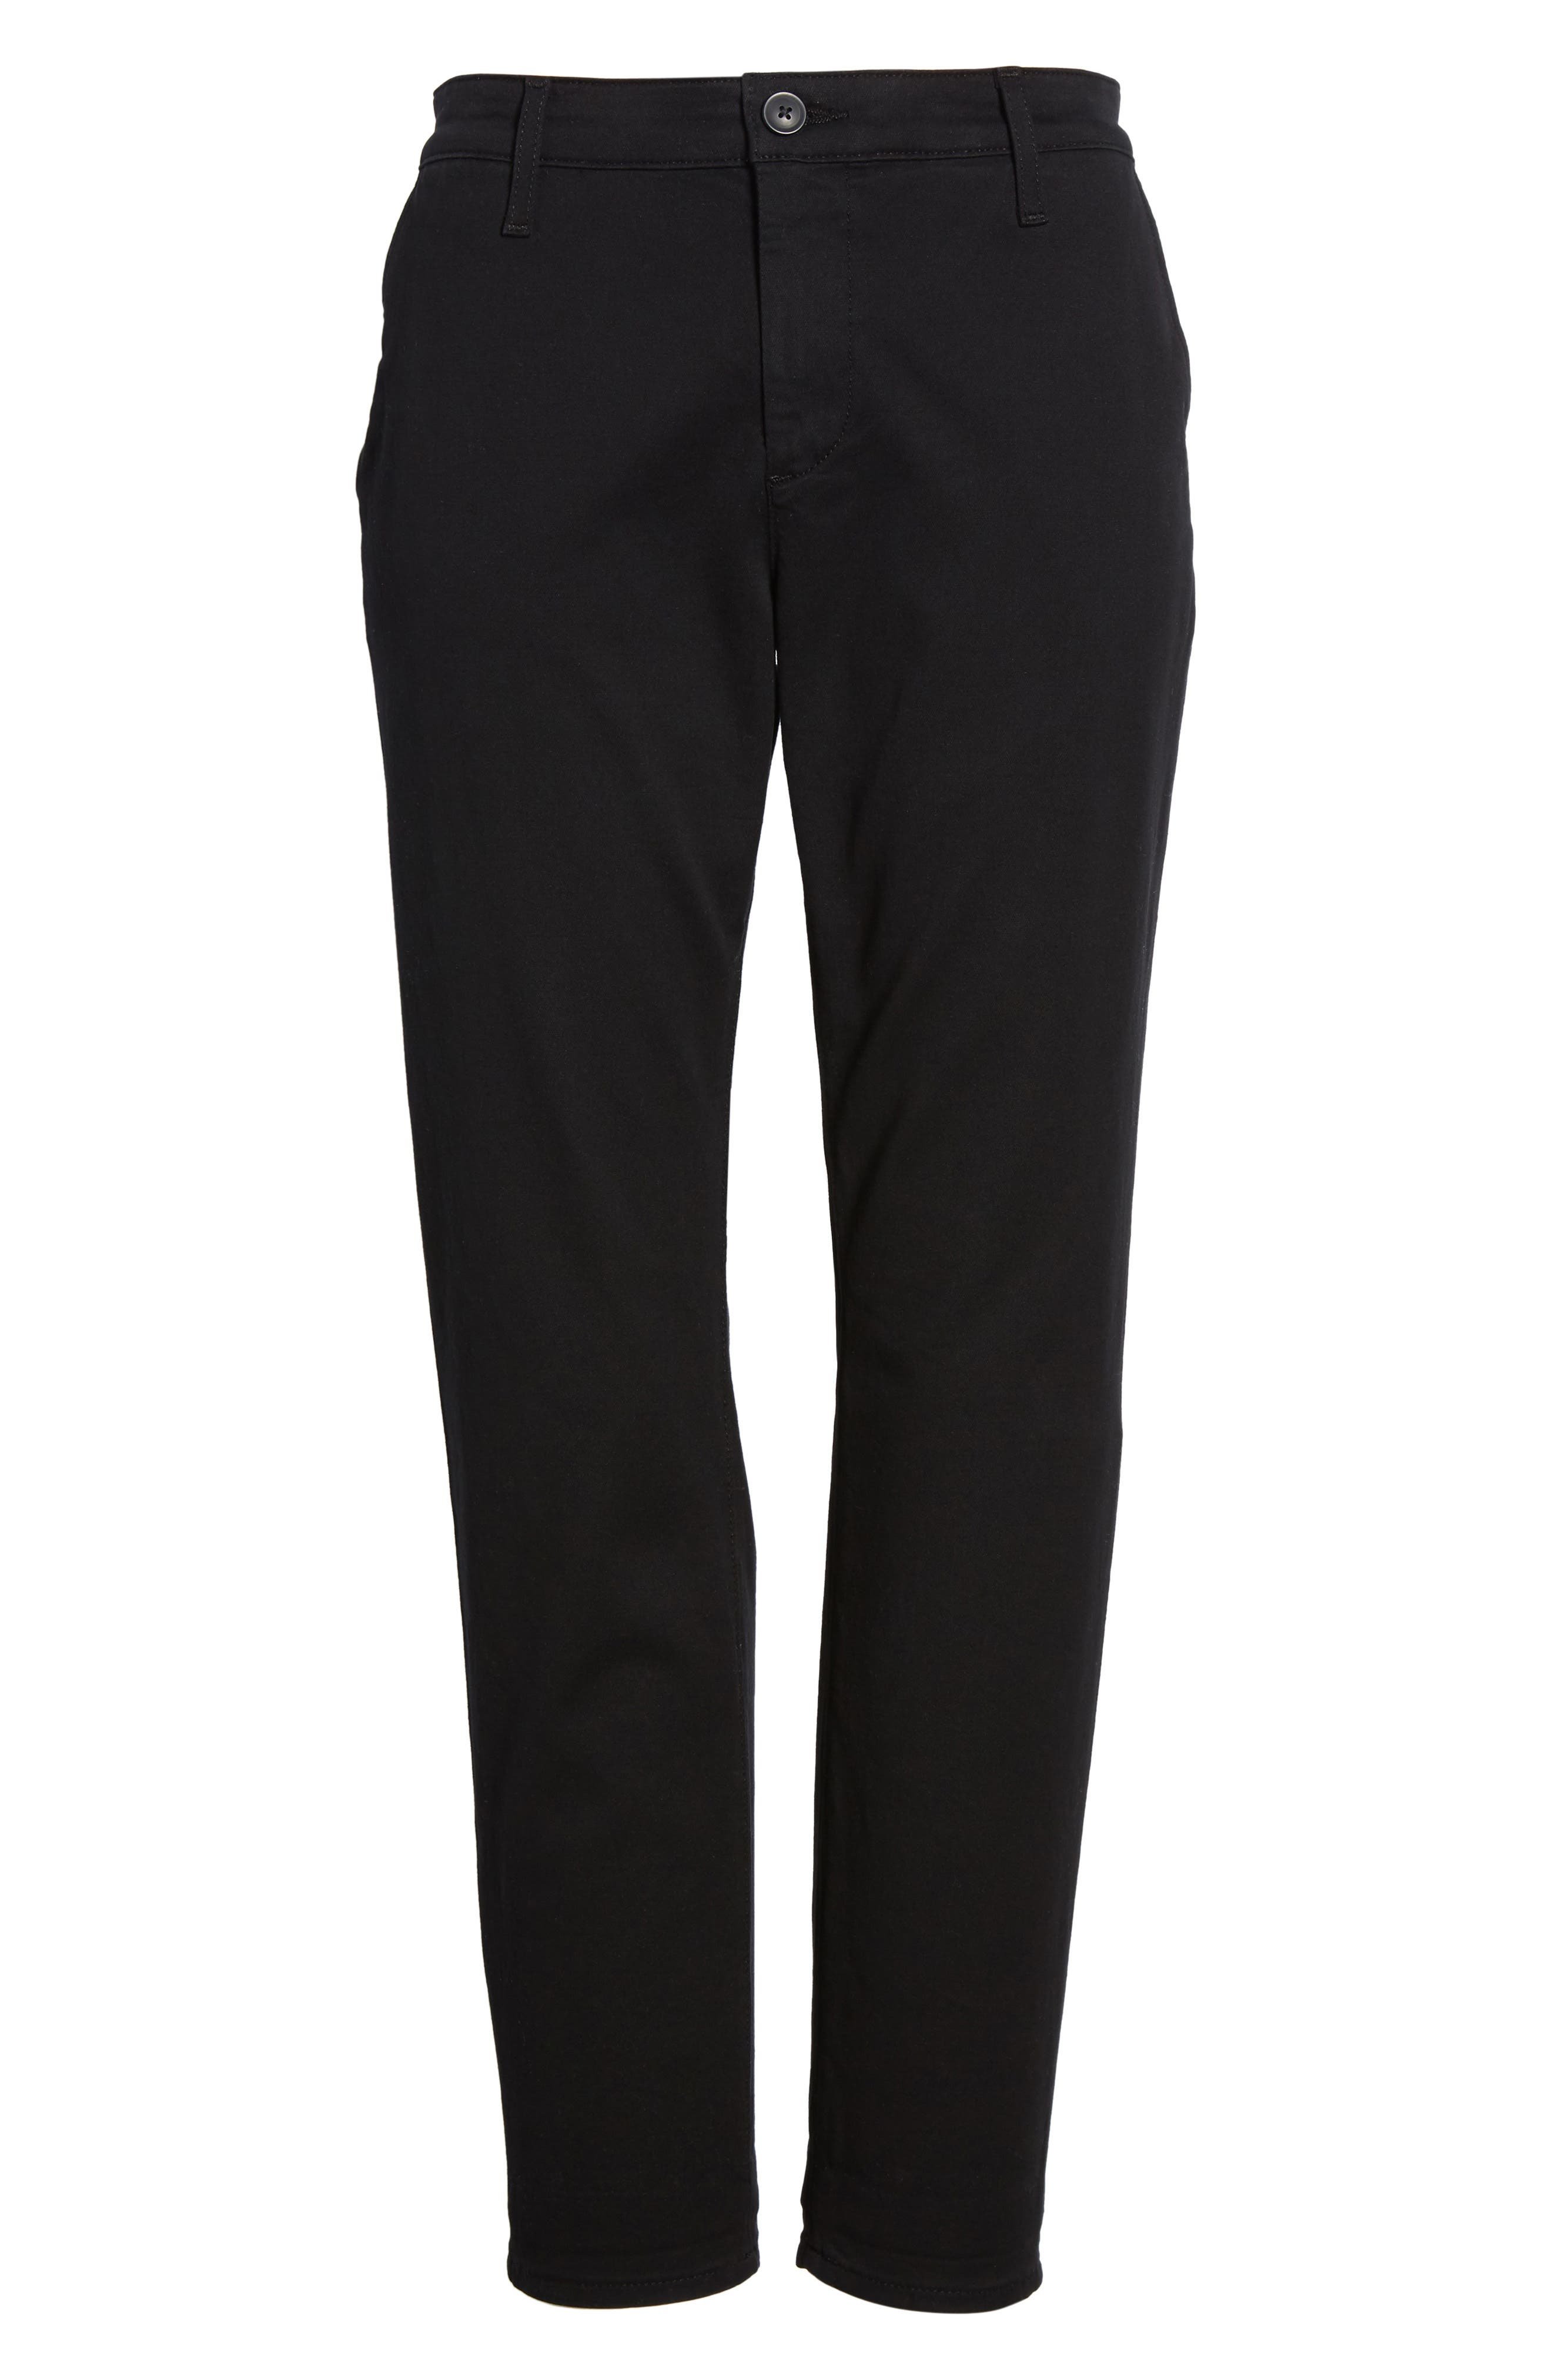 Caden Crop Twill Trousers,                             Alternate thumbnail 7, color,                             010